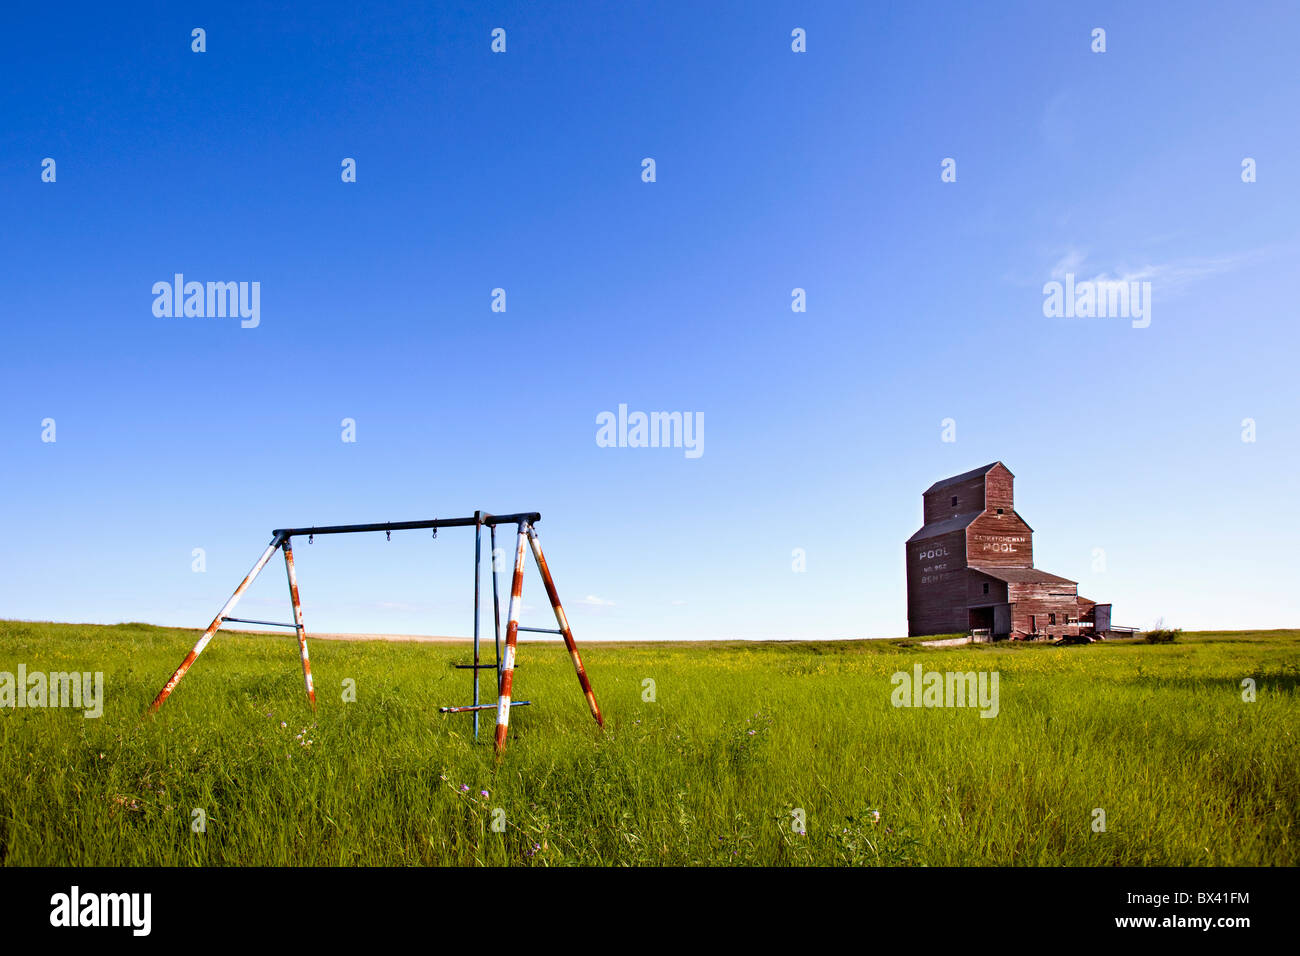 An Old Swing Set With A Grain Elevator Behind It In A Ghost Town; Bents, Saskatchewan, Canada - Stock Image